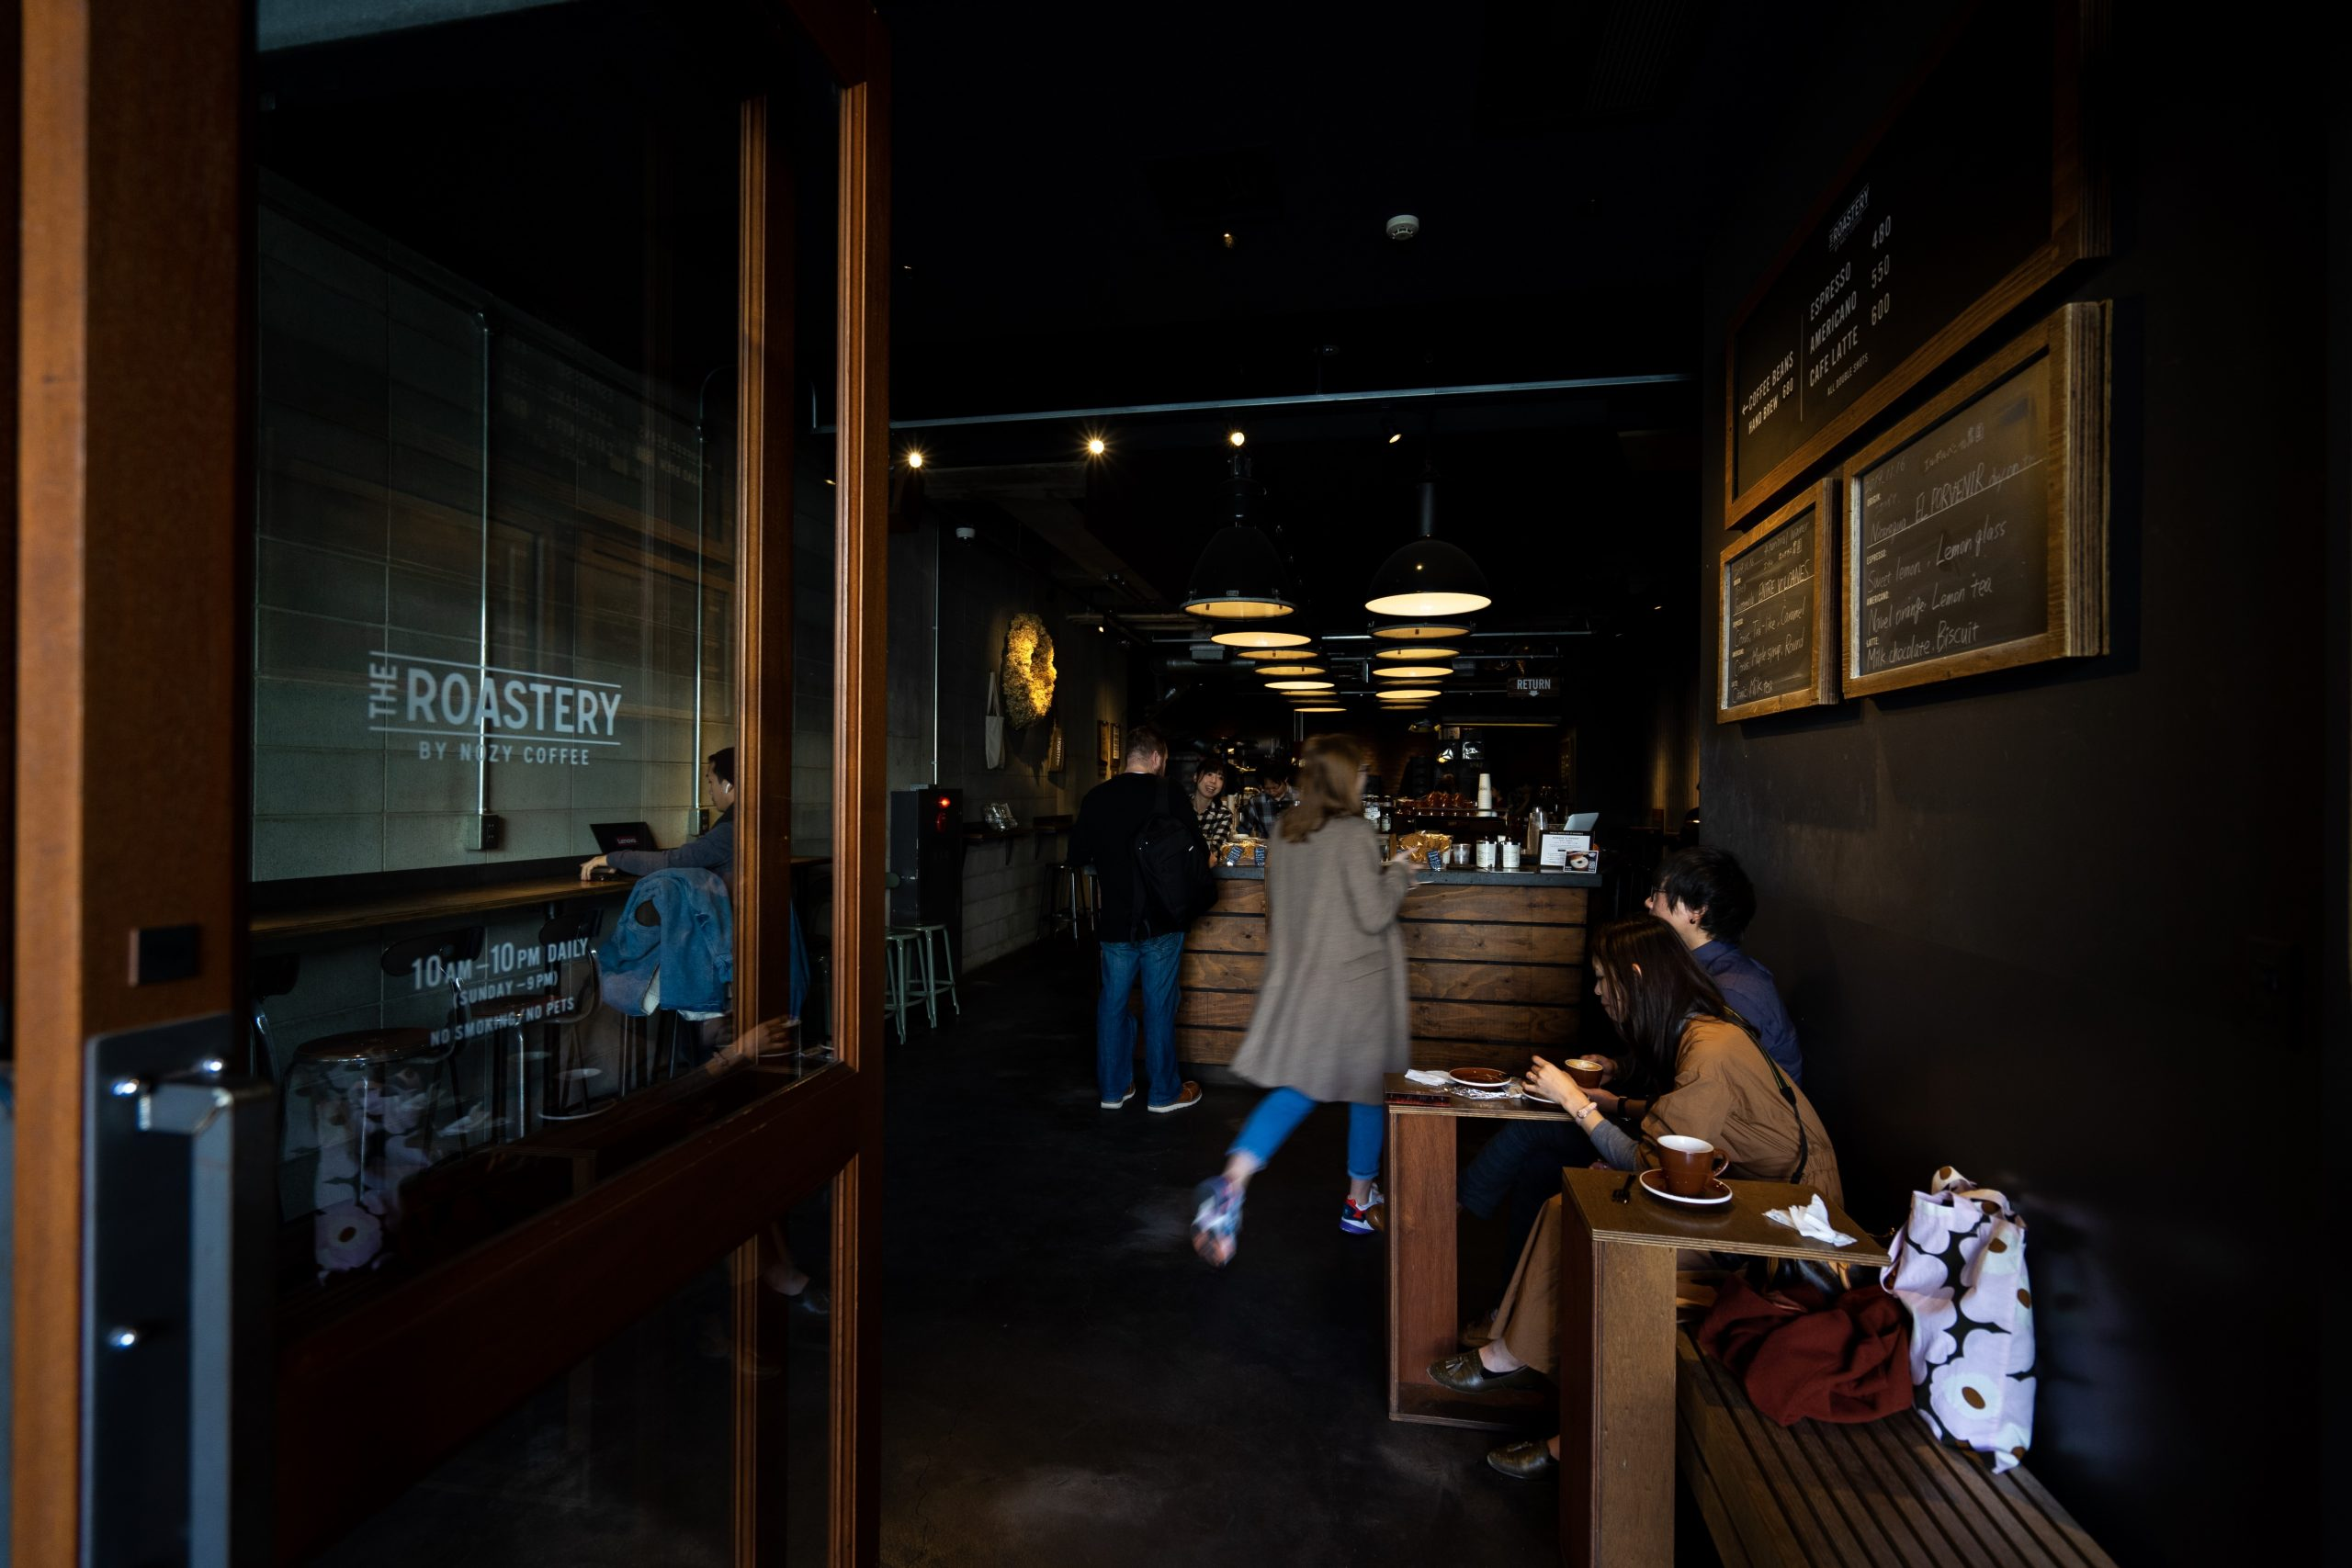 渋谷/原宿 – THE ROASTERY by Nozy coffee